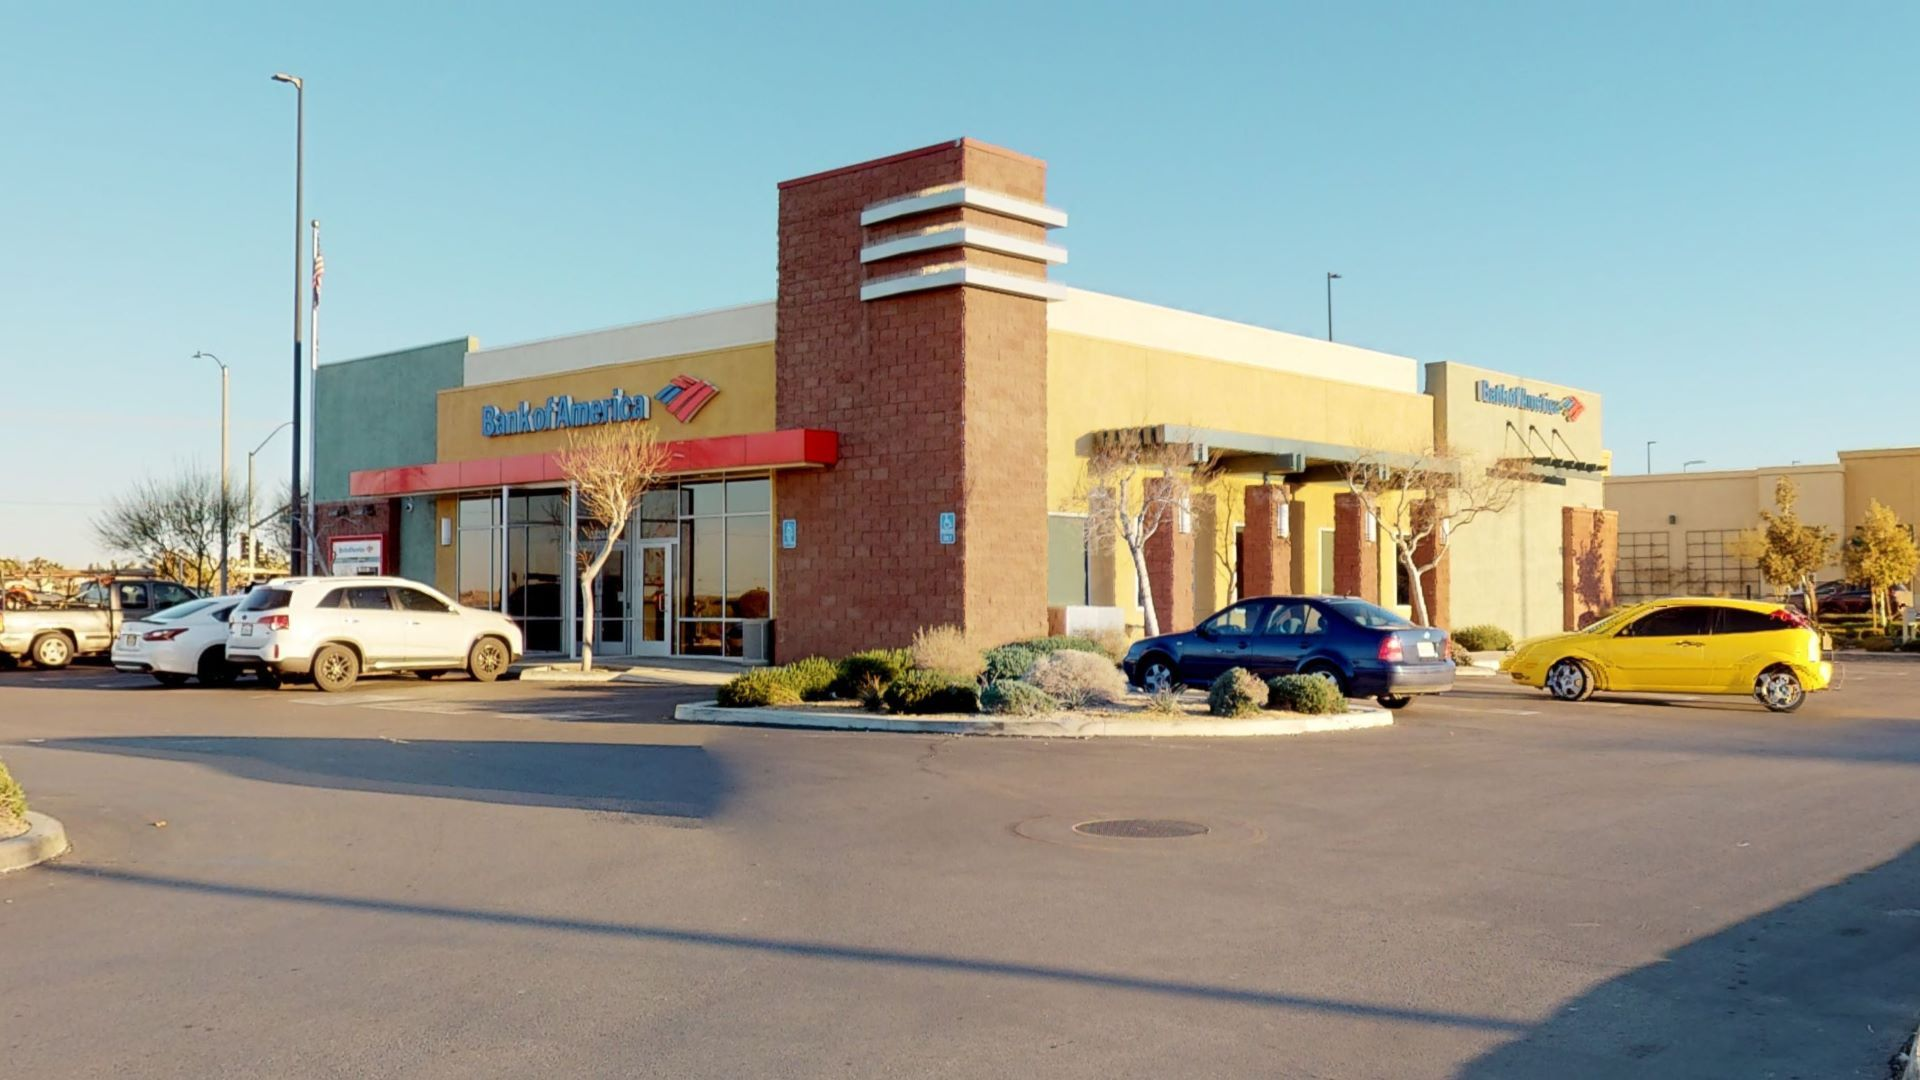 Bank of America financial center with drive-thru ATM | 38203 47th St E, Palmdale, CA 93552